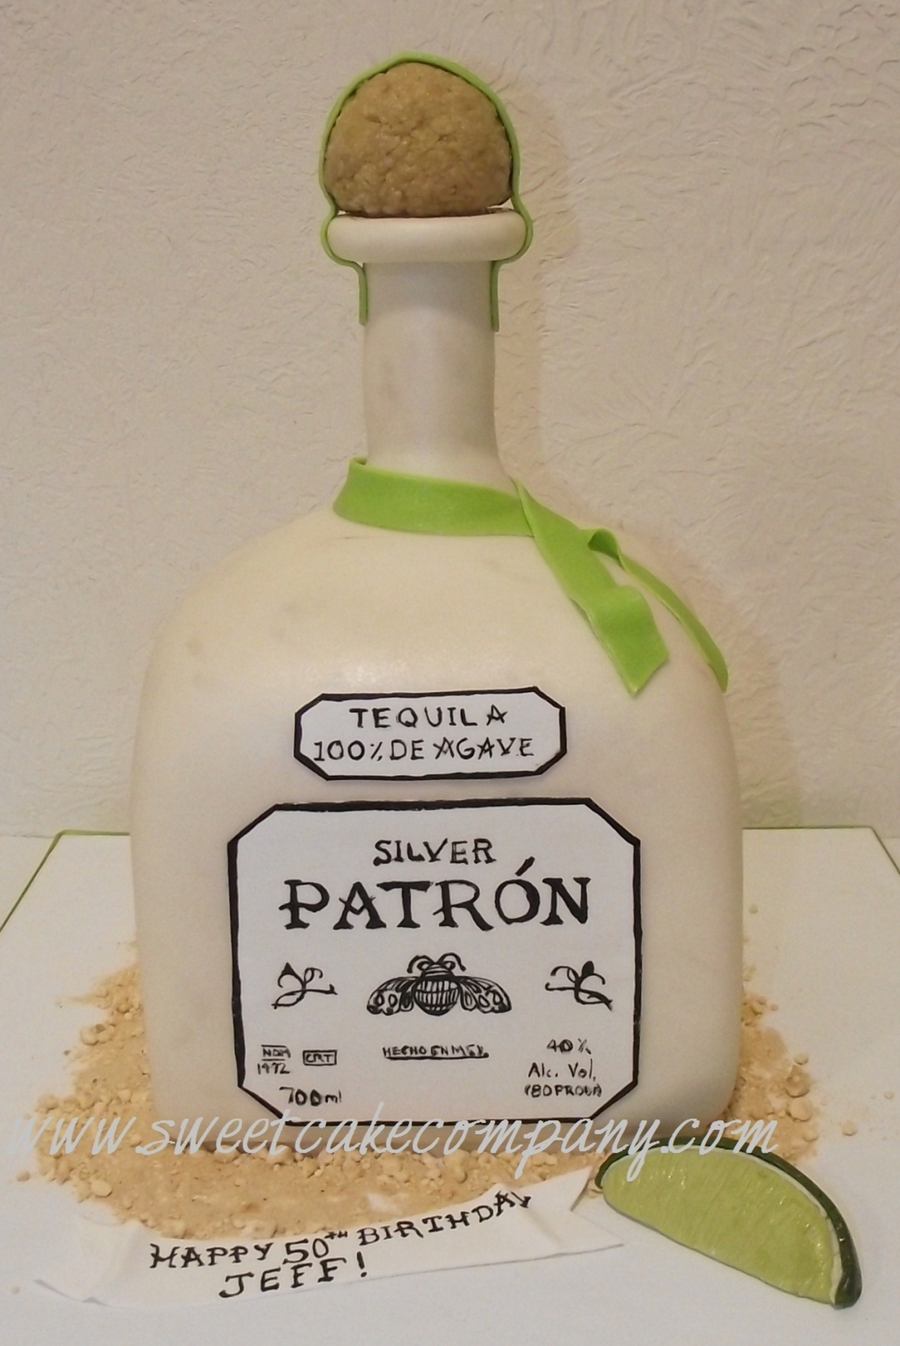 Silver Patron Bottle Cake  on Cake Central